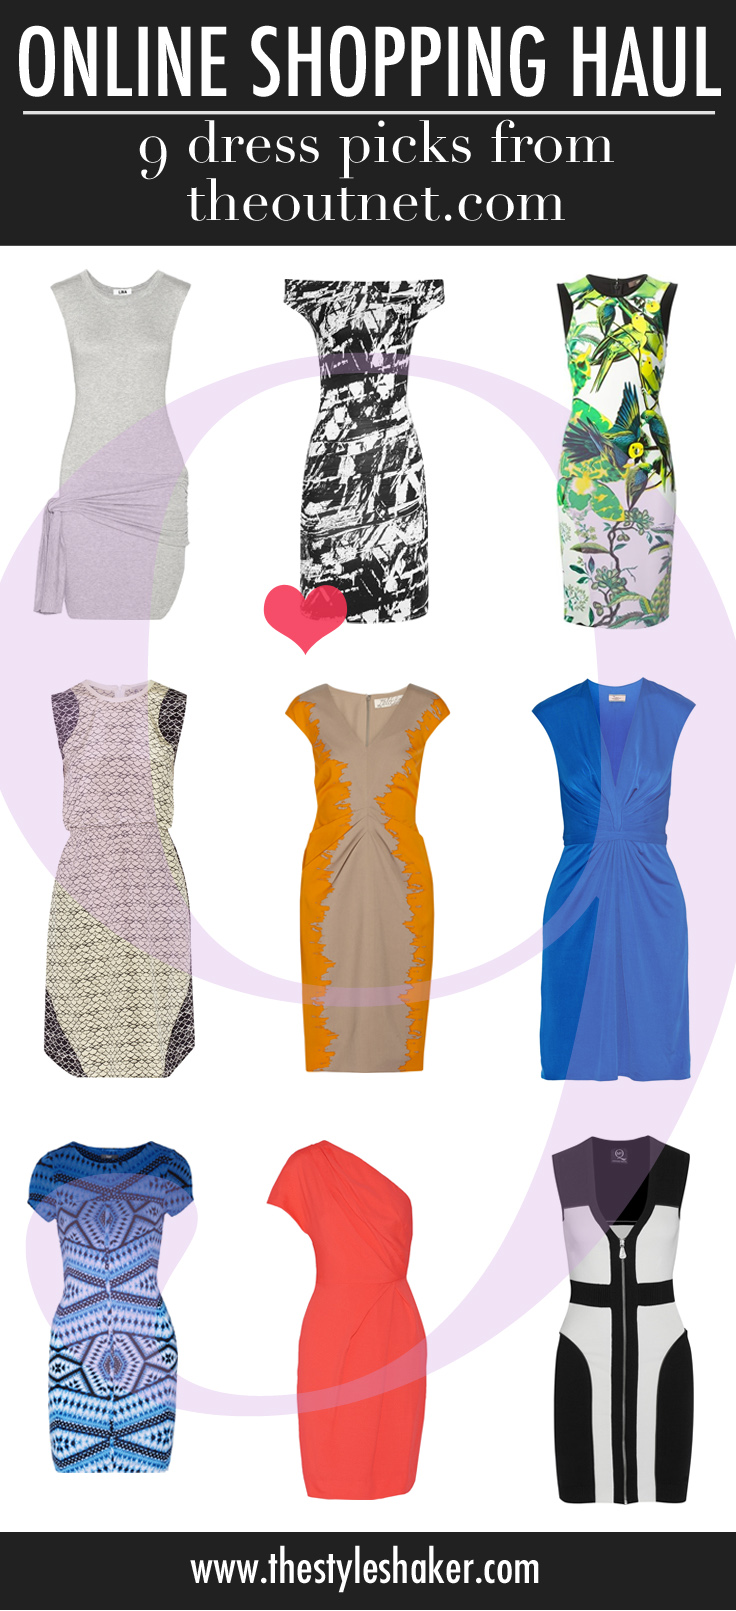 9 dresses we've added to the shopping list, courtesy of theoutnet.com